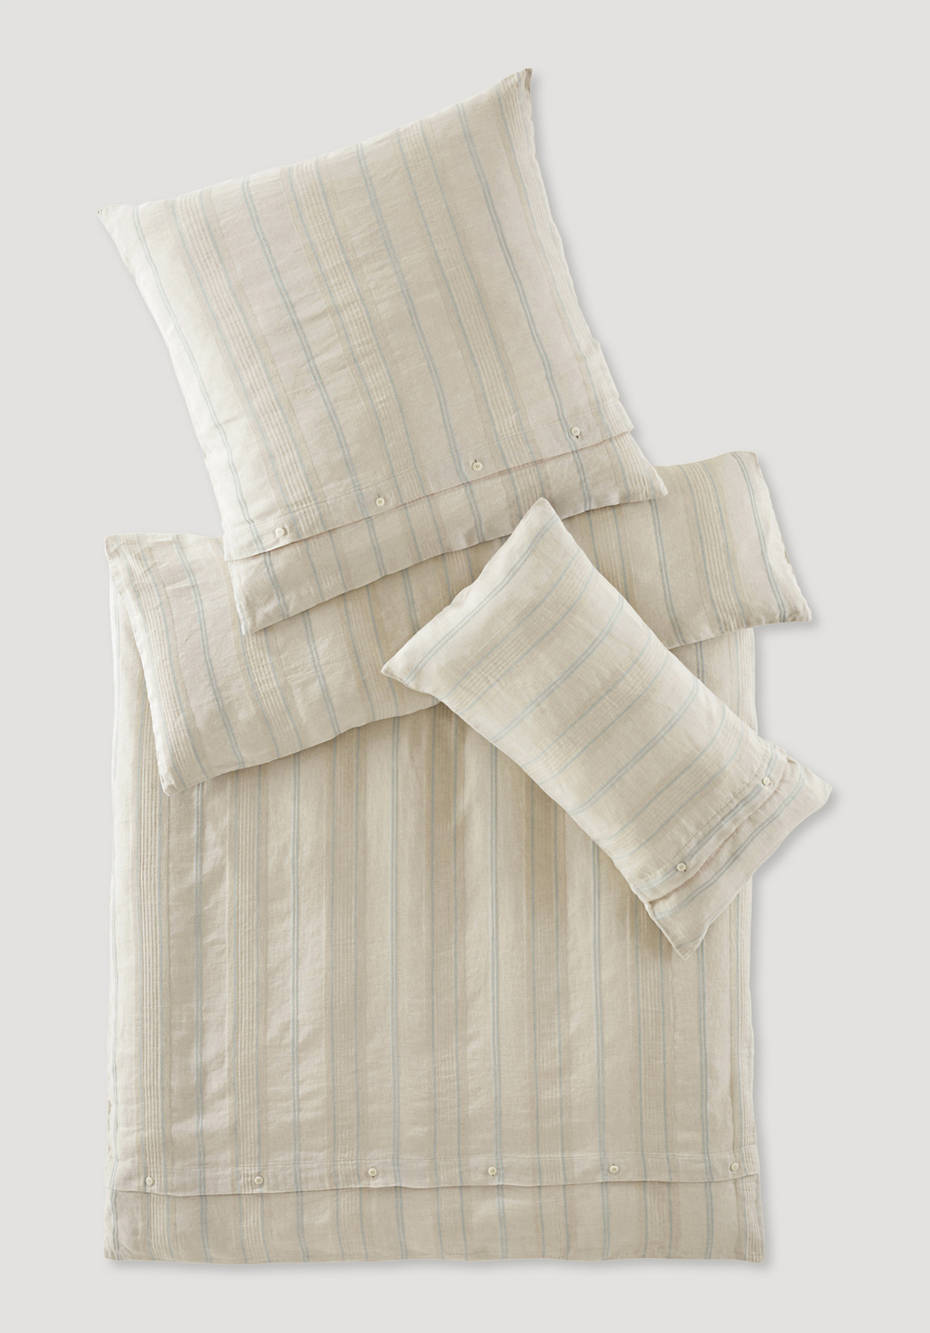 Limoges bed linen set made from organic linen with organic cotton